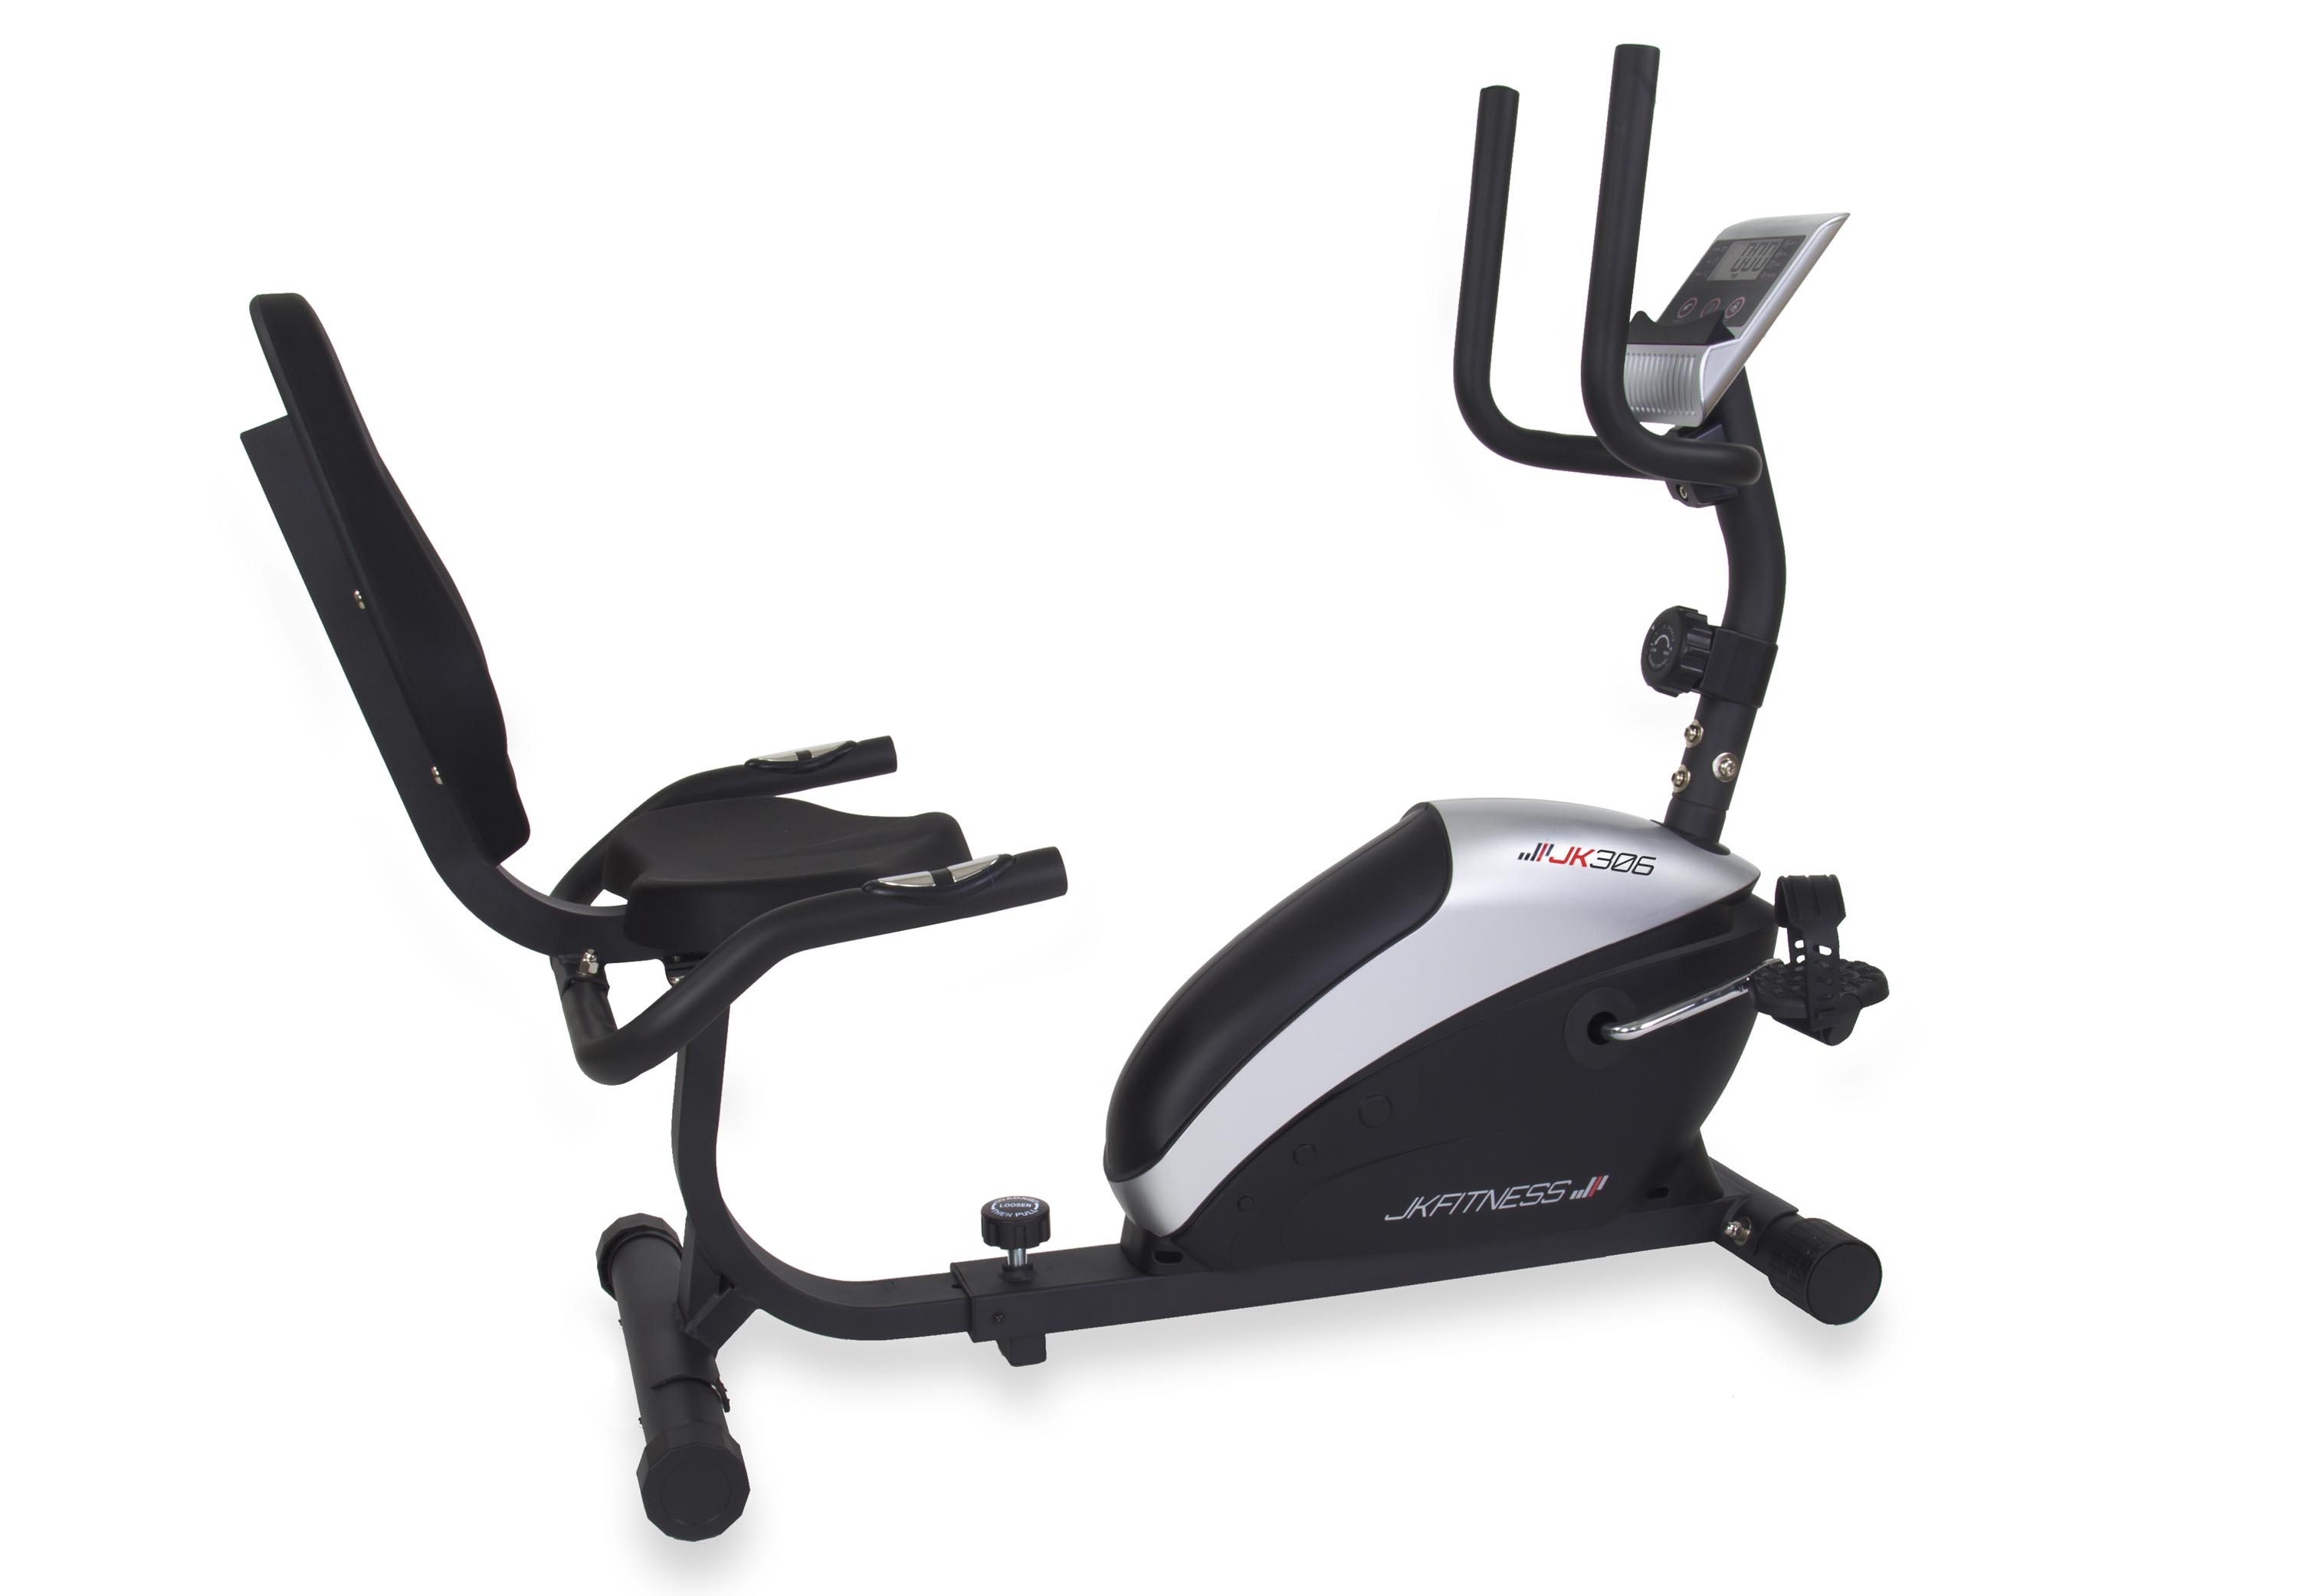 Cyclette orizzontale magnetica ad 8 livelli di resistenza manuale - JK Fitness - JK 306